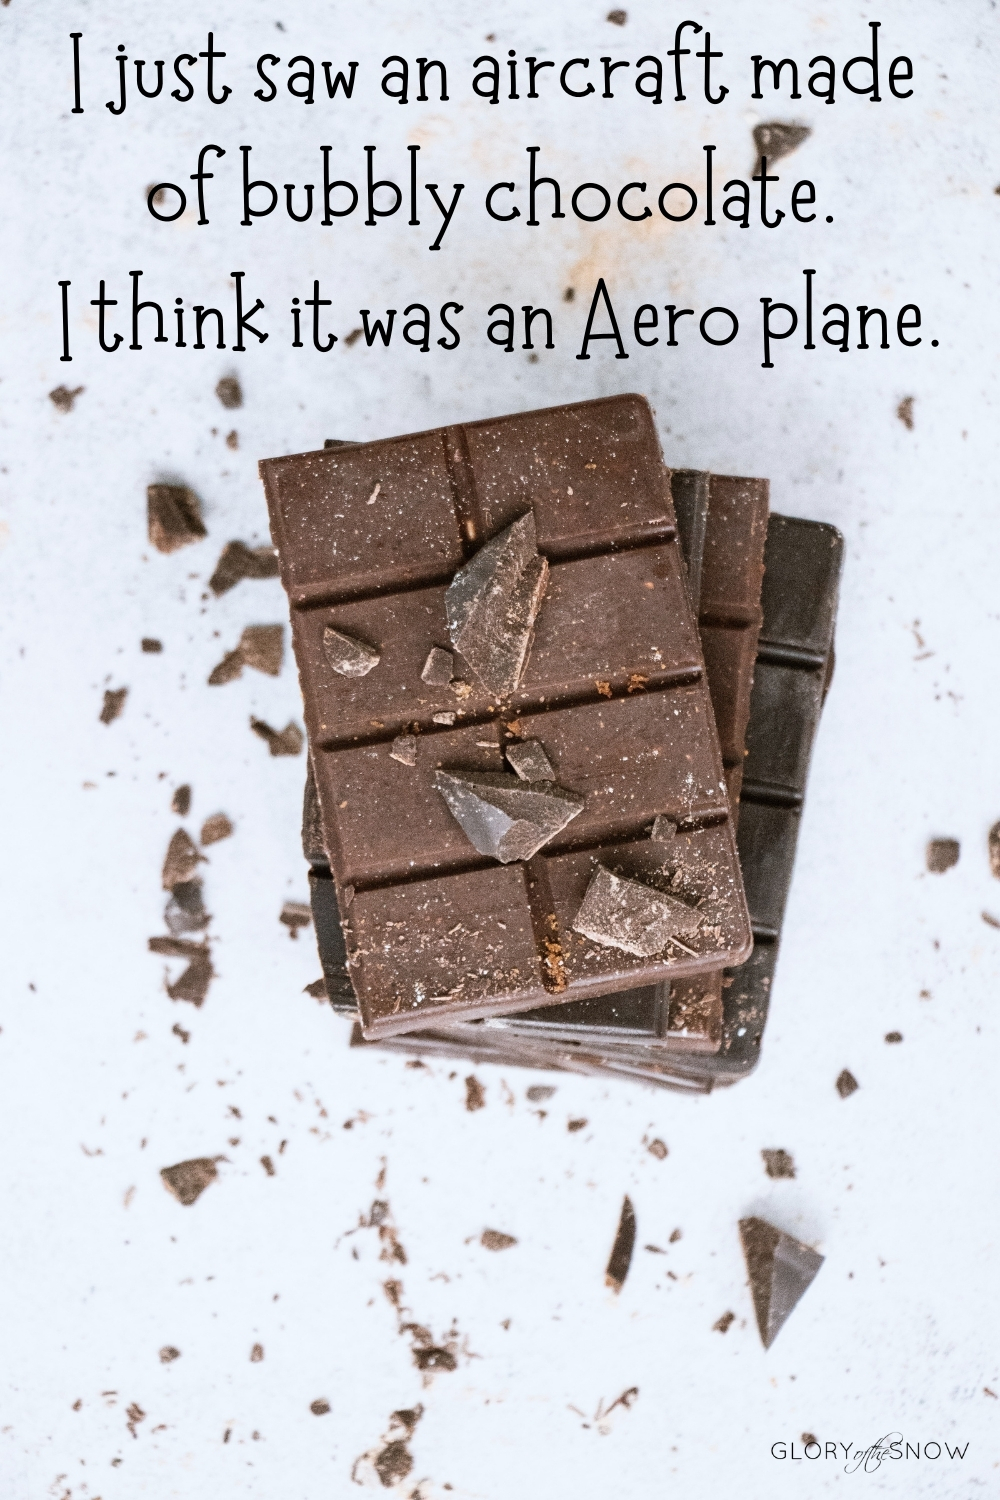 Funny Chocolate Puns And Jokes